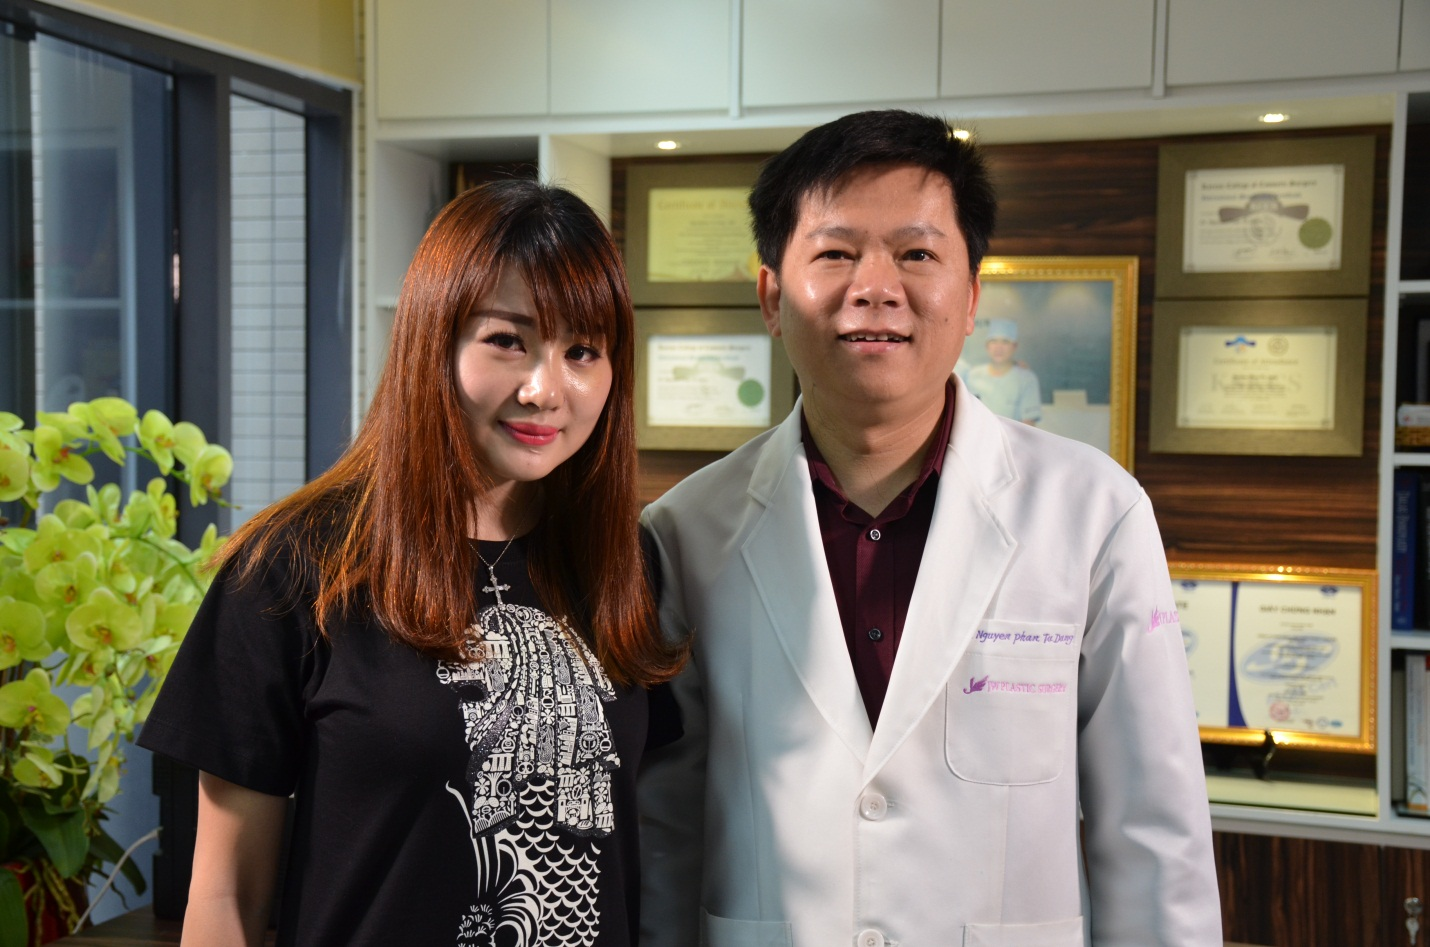 Ms. Lean Yee Lings take a picture with Dr. Dung ( a result after 7 days)